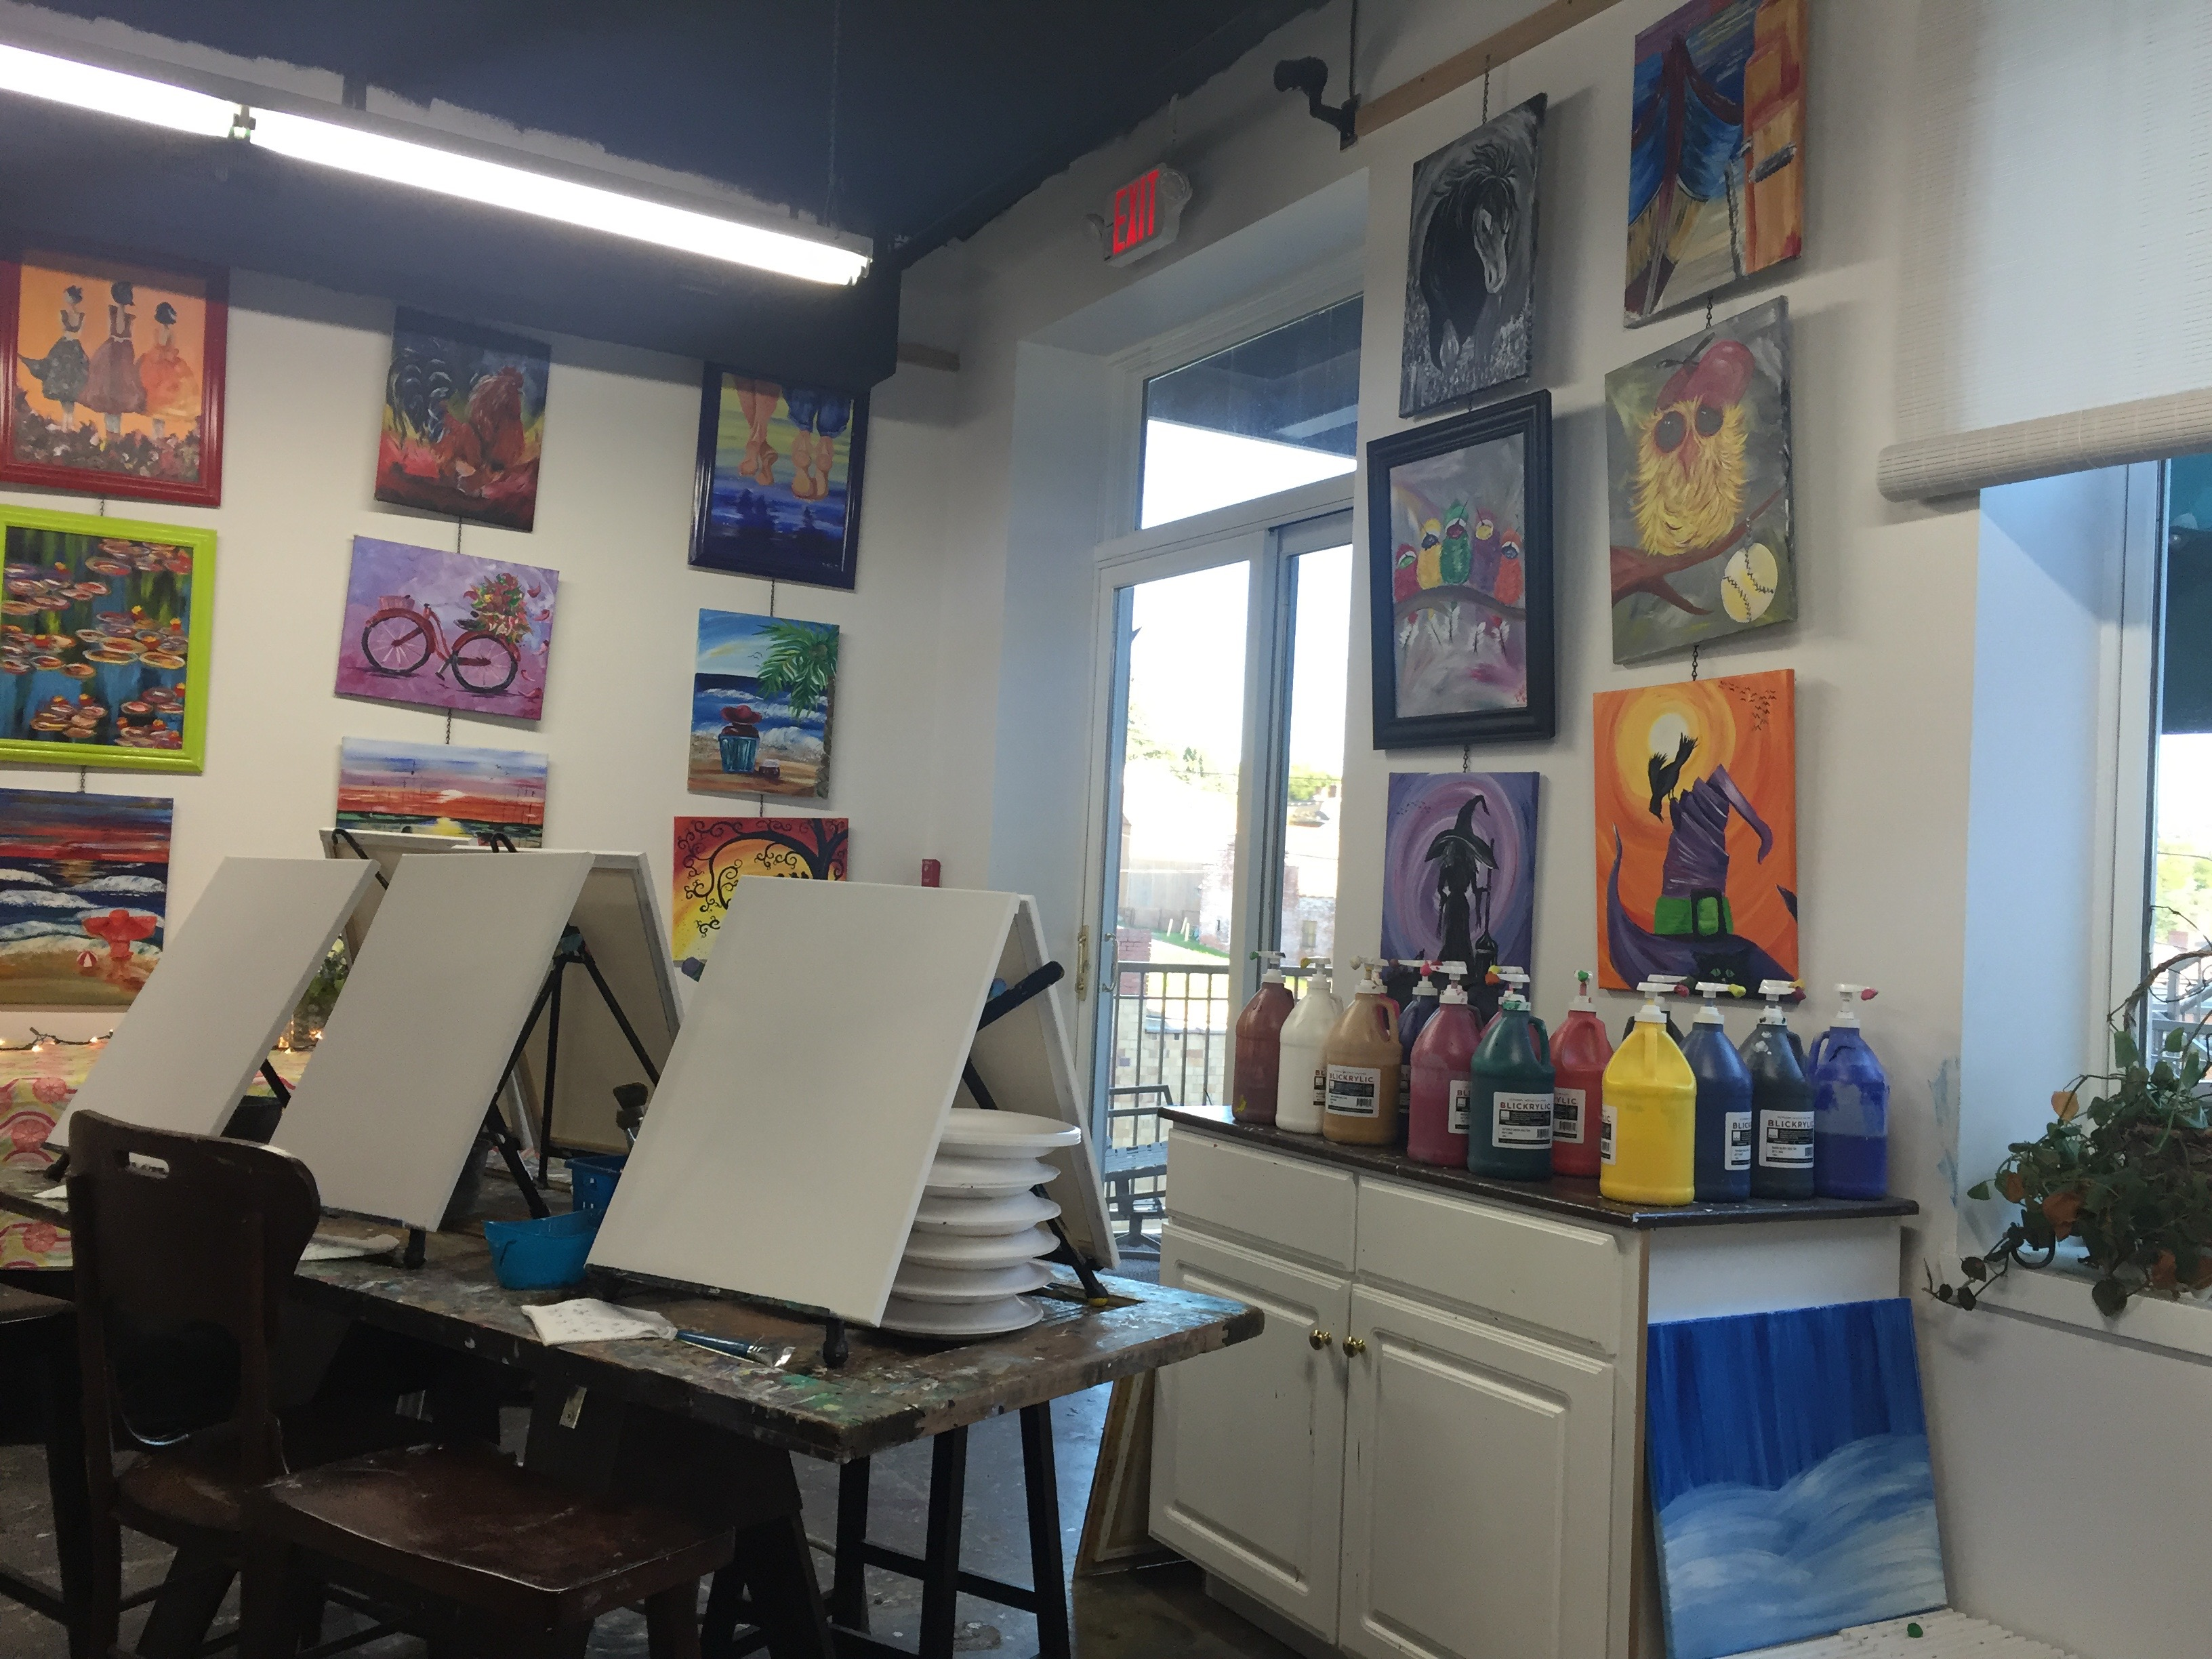 Two Broke Artists Art Studio In Downtown Lancaster Features Artwork From  Past ...